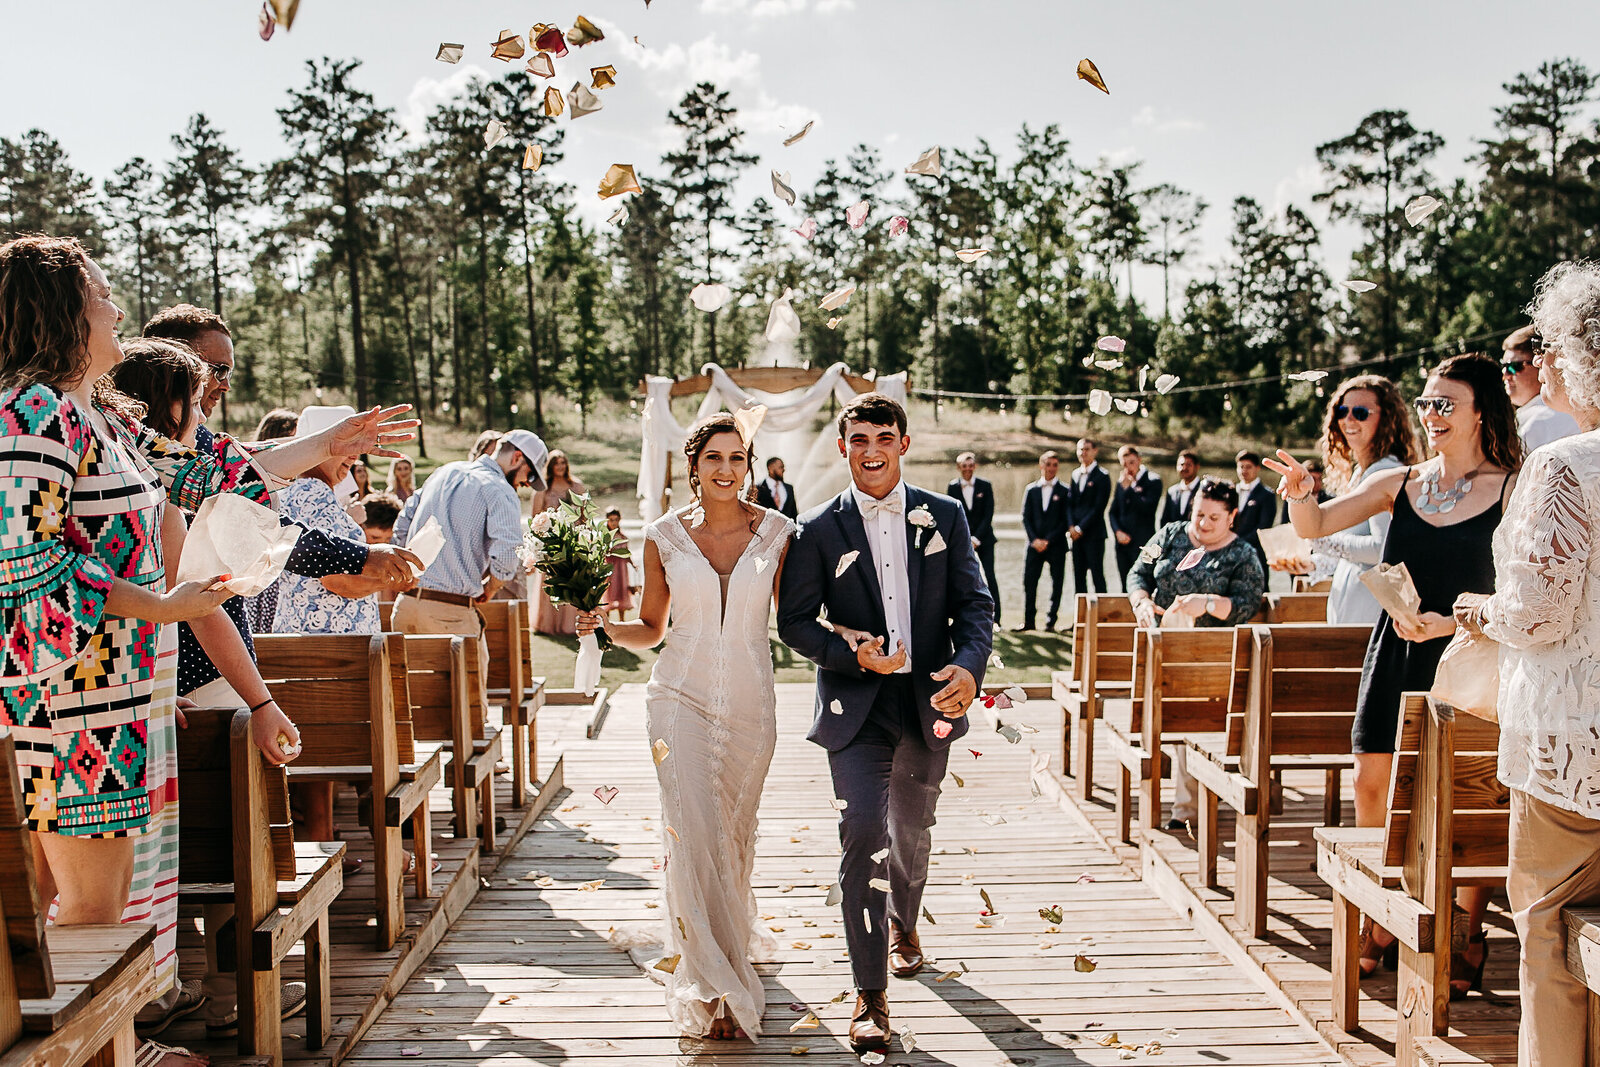 Guests throw flower petals as the Bride and Groom exit their ceremony at their Griffin, Ga wedding